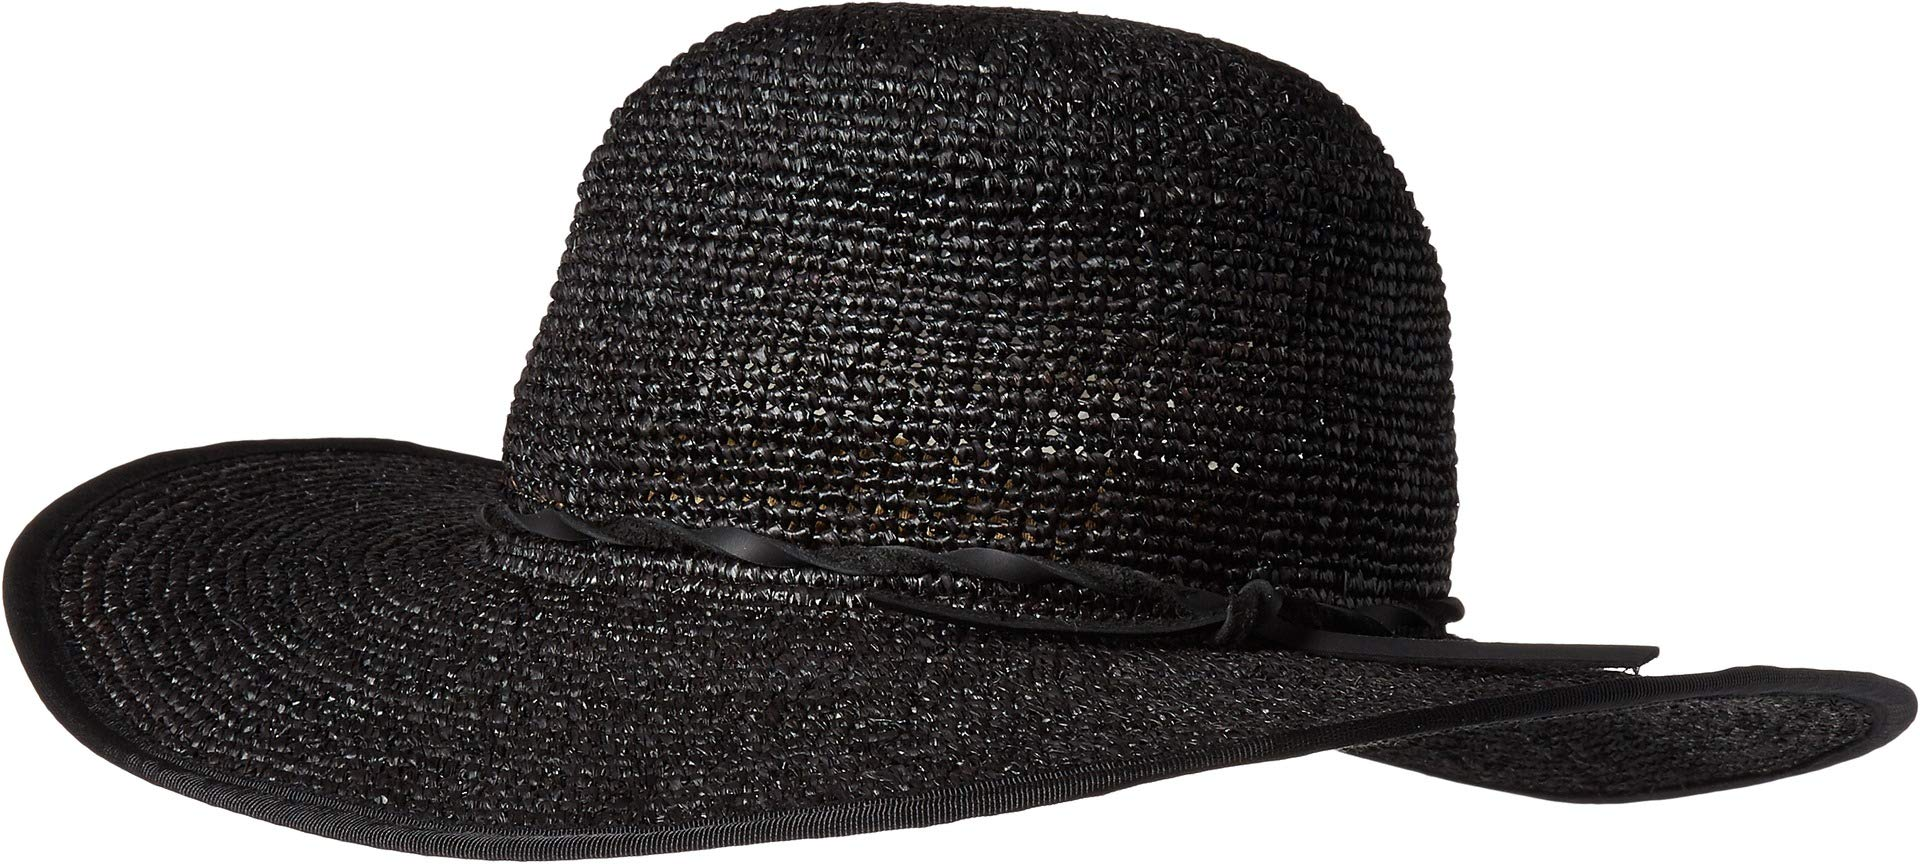 Goorin Bros. Women's Desert Sun, Black, Medium